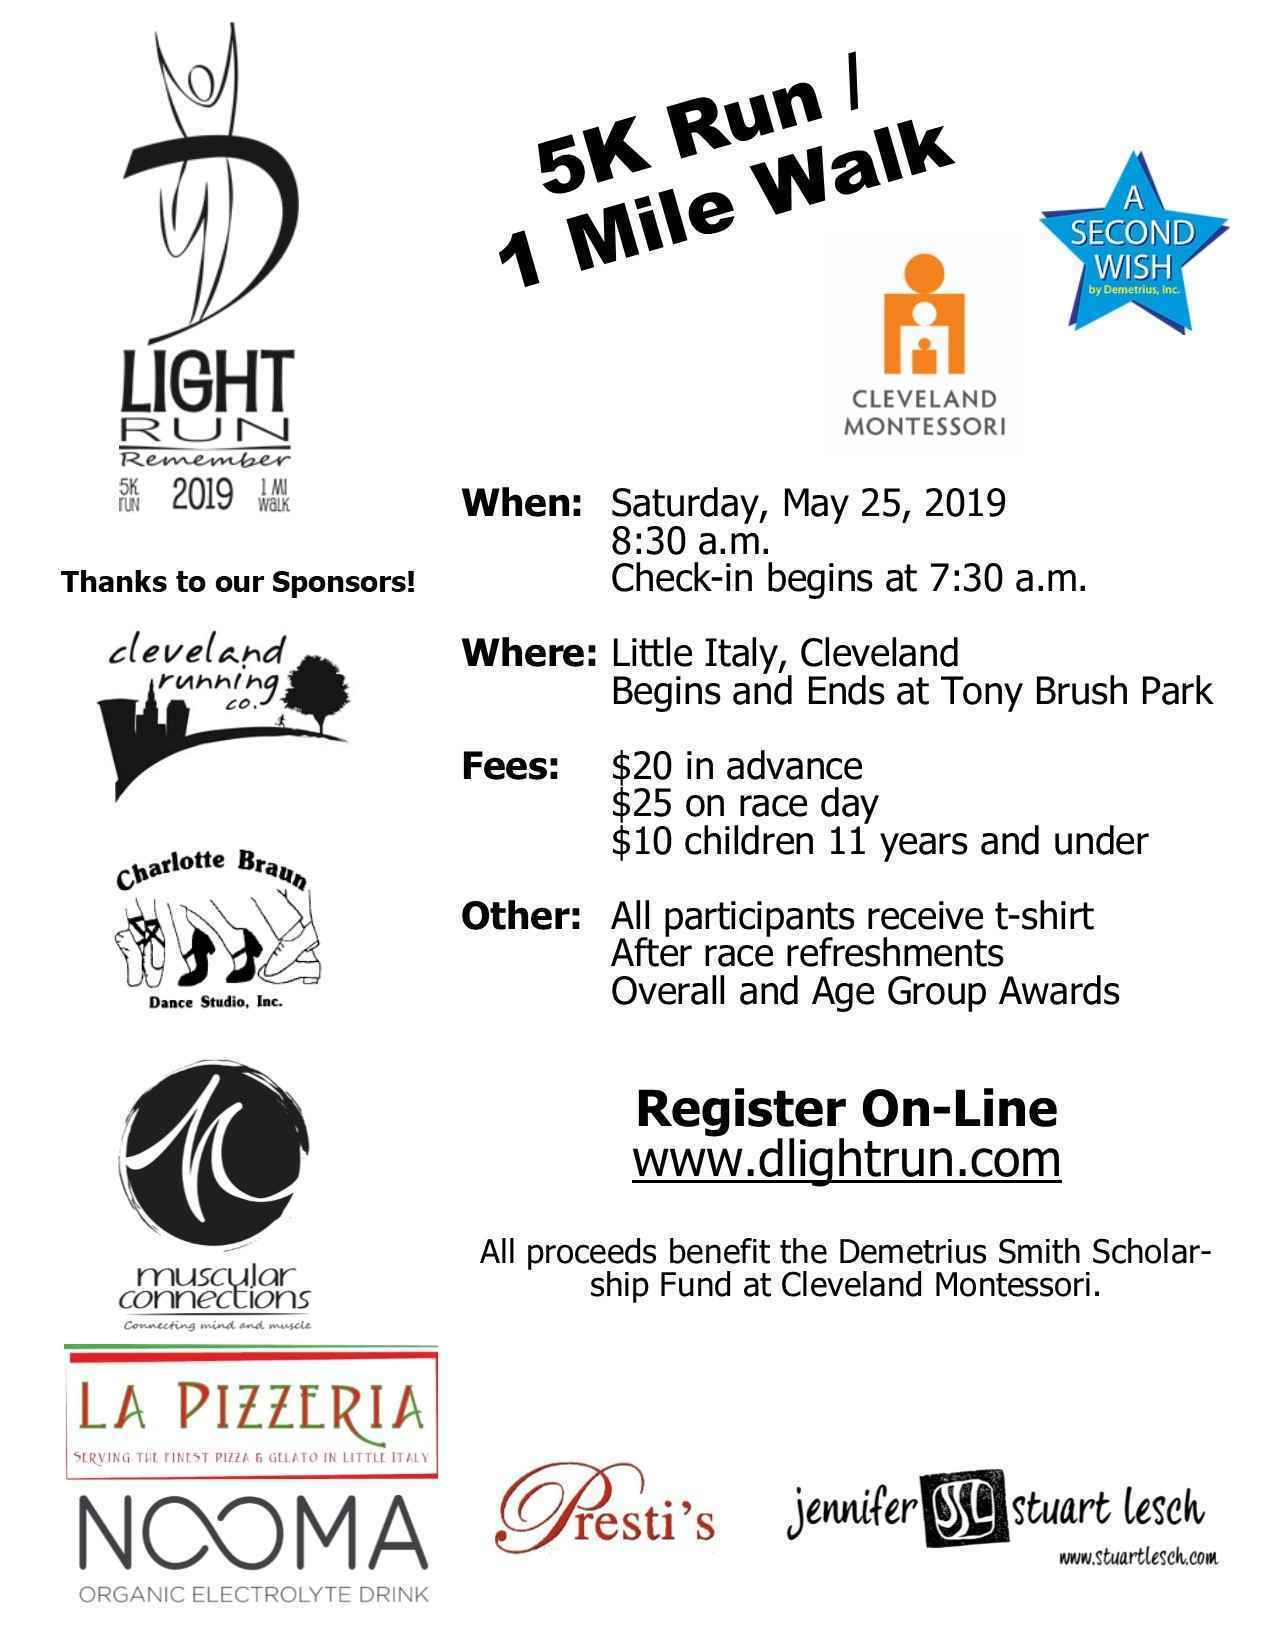 D'Light 5K Run / 1 Mile Walk image